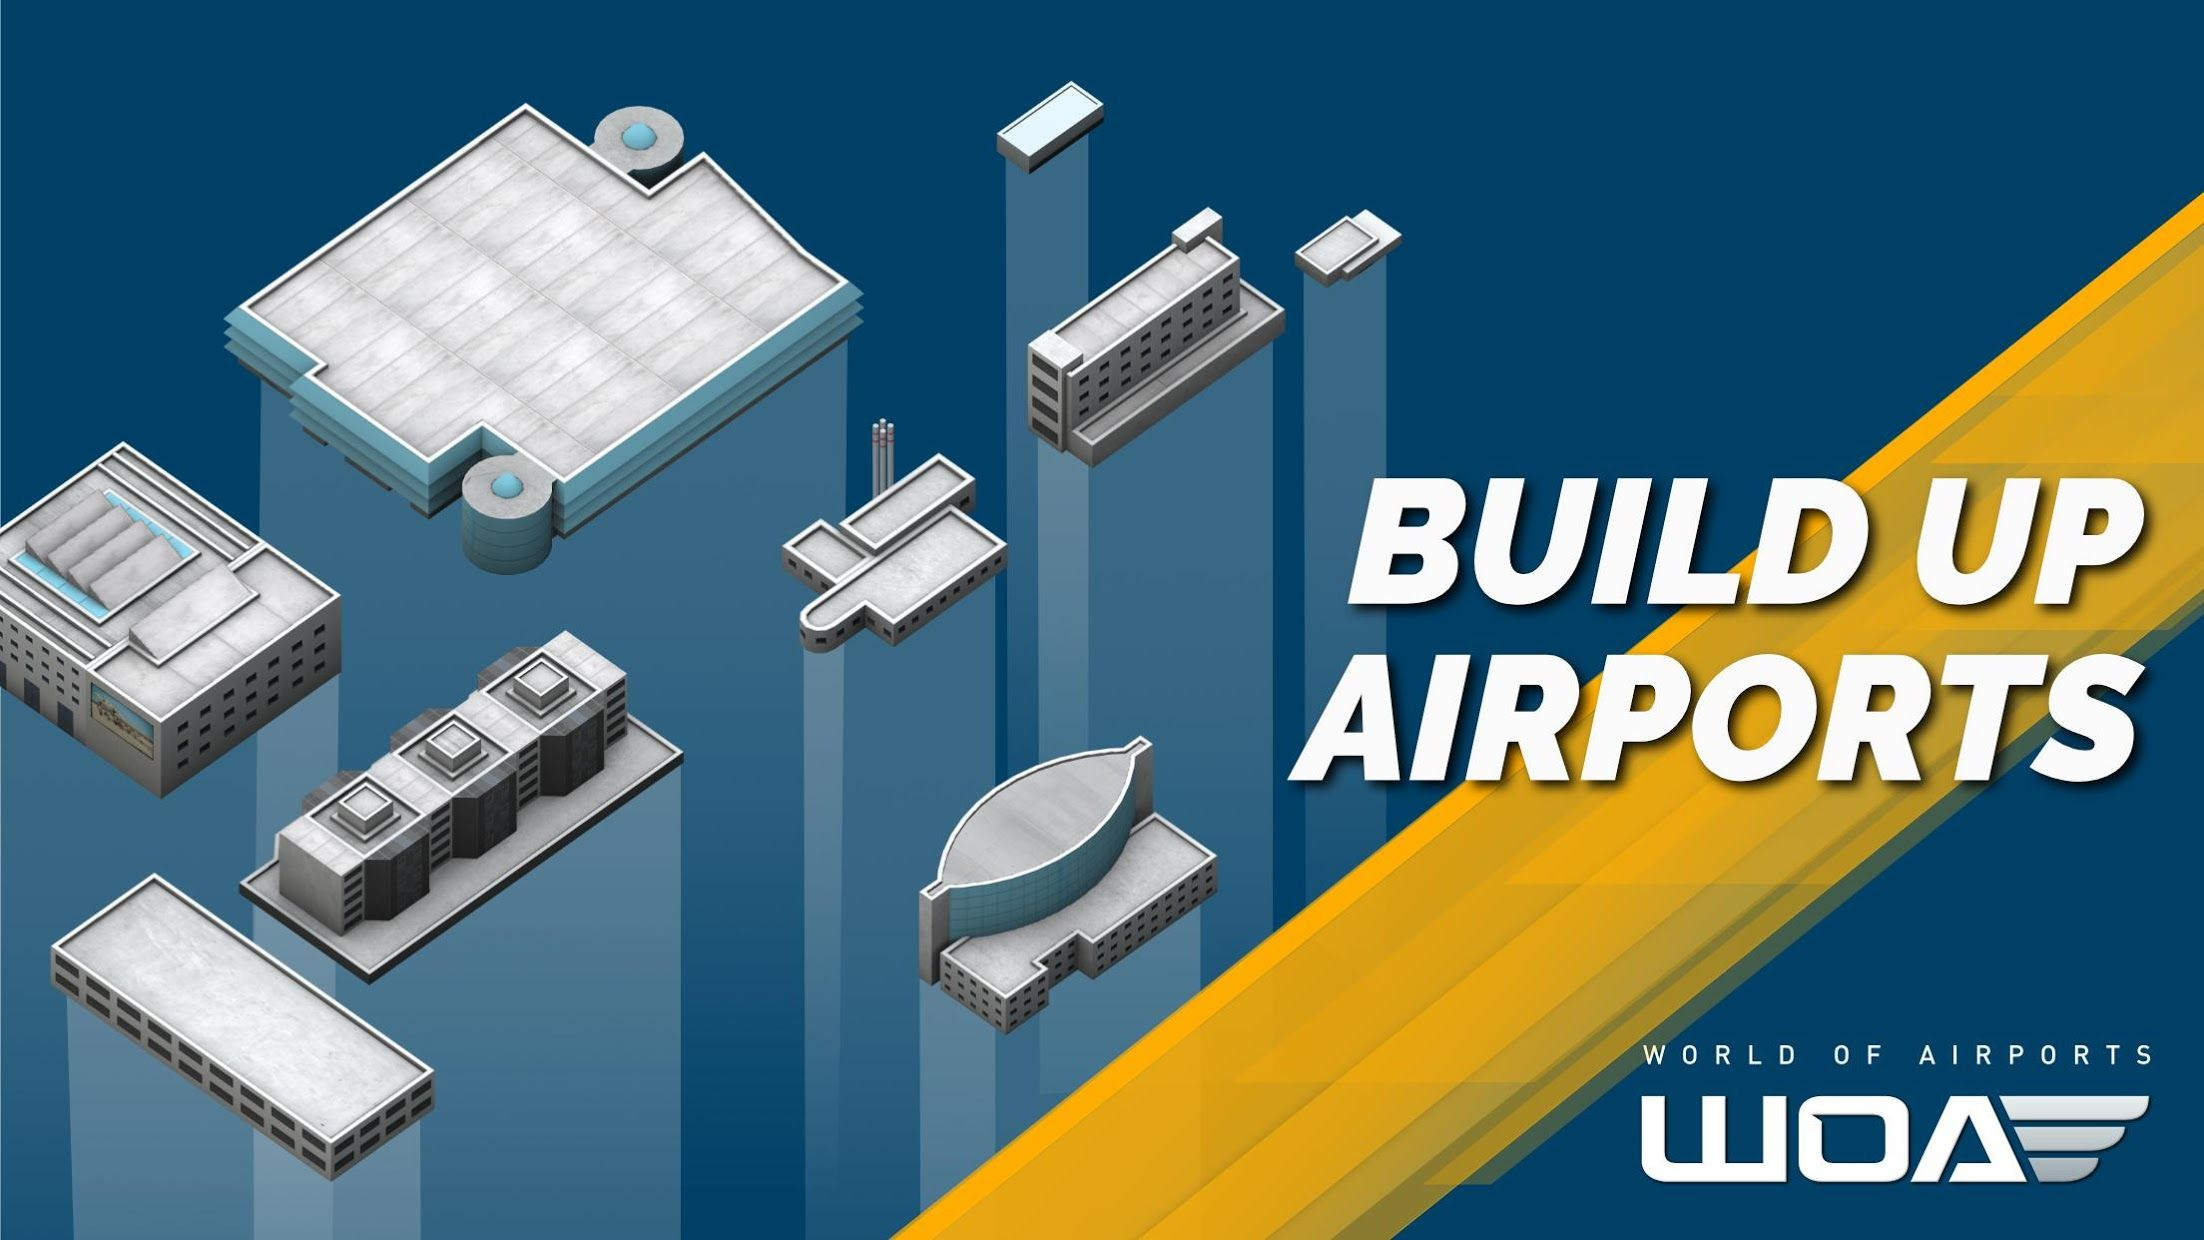 World of Airports 游戏截图4